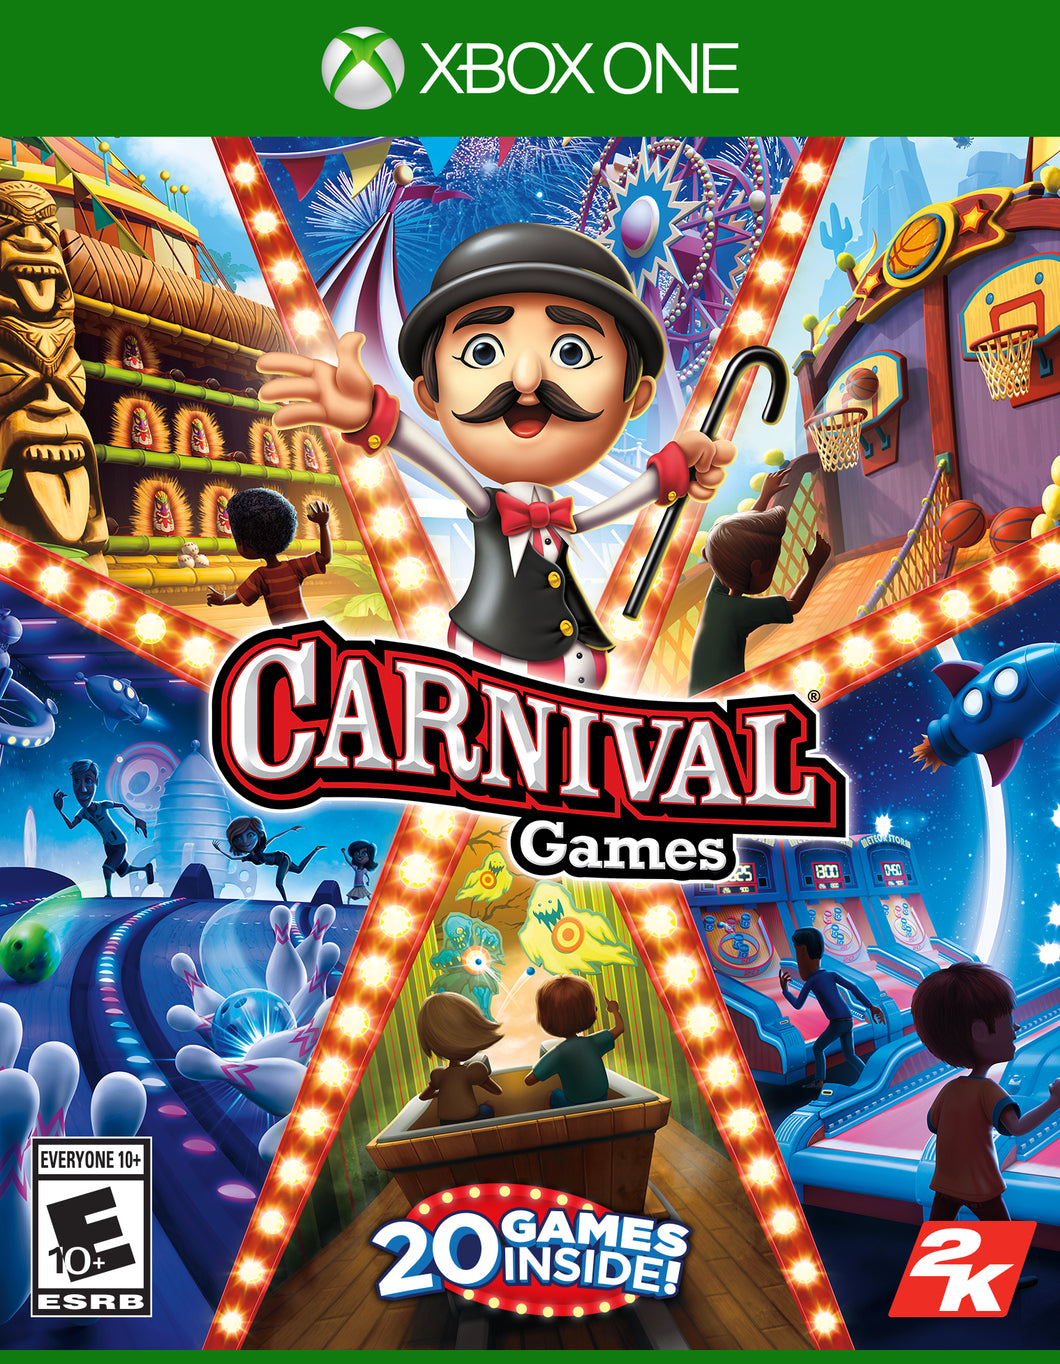 Carnival Games, 2K, Xbox One, 710425594762